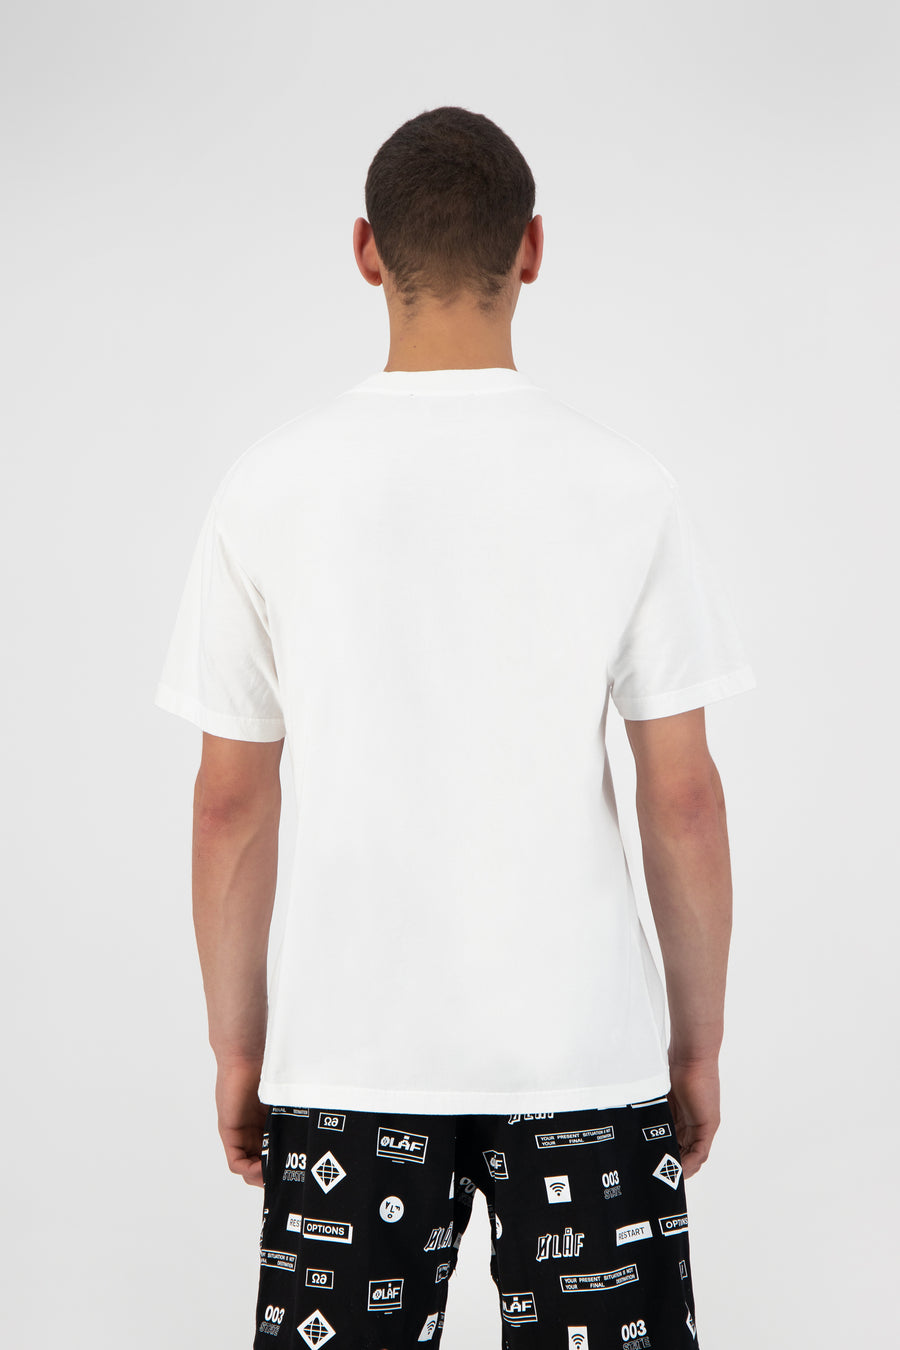 ØLÅF Uniform Tee - White